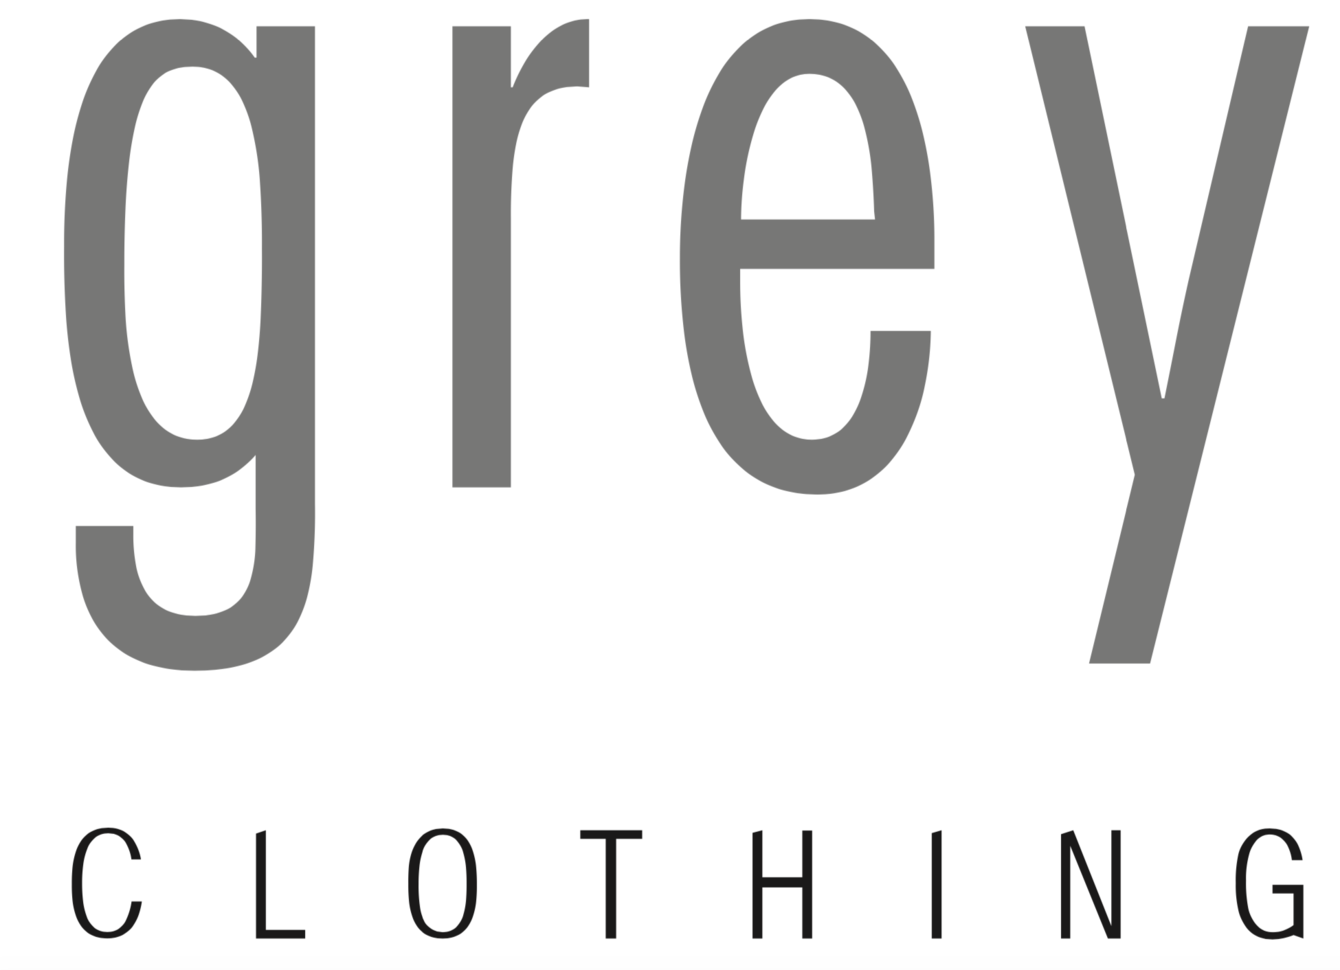 Grey Clothing